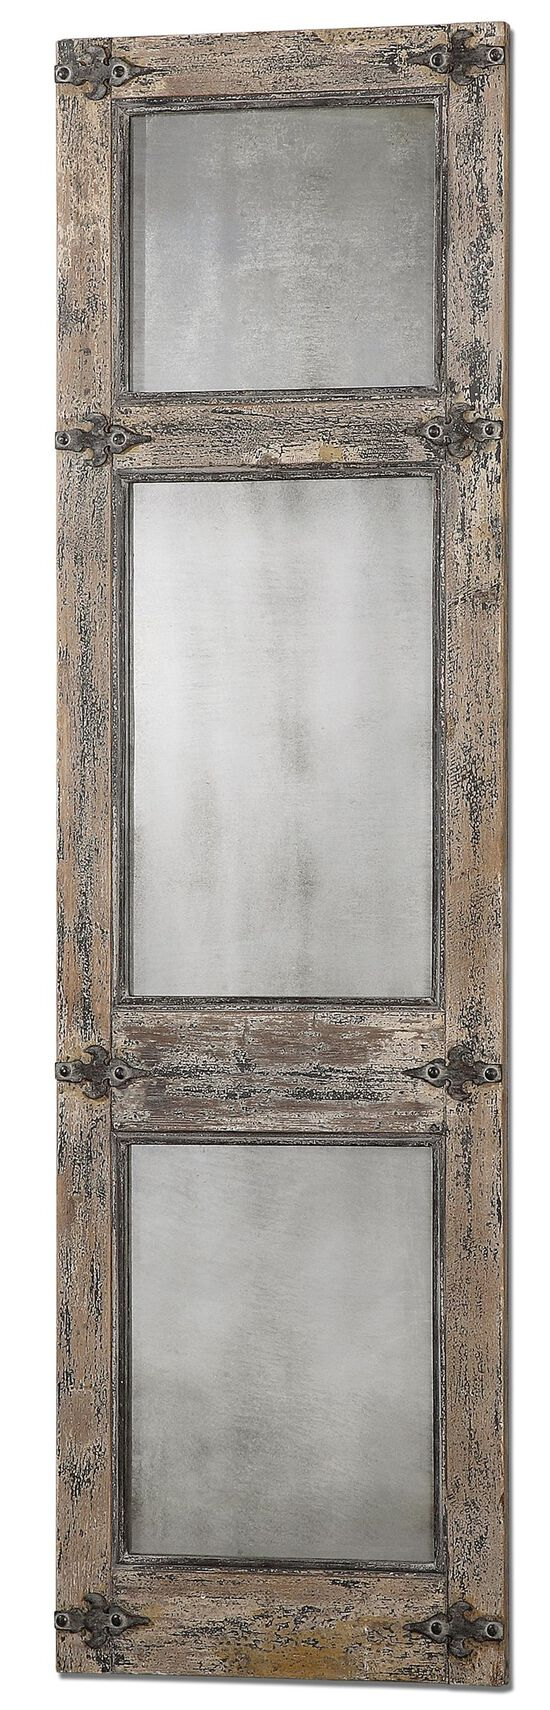 "78"" Distressed Leaner Mirror in Slate Blue"